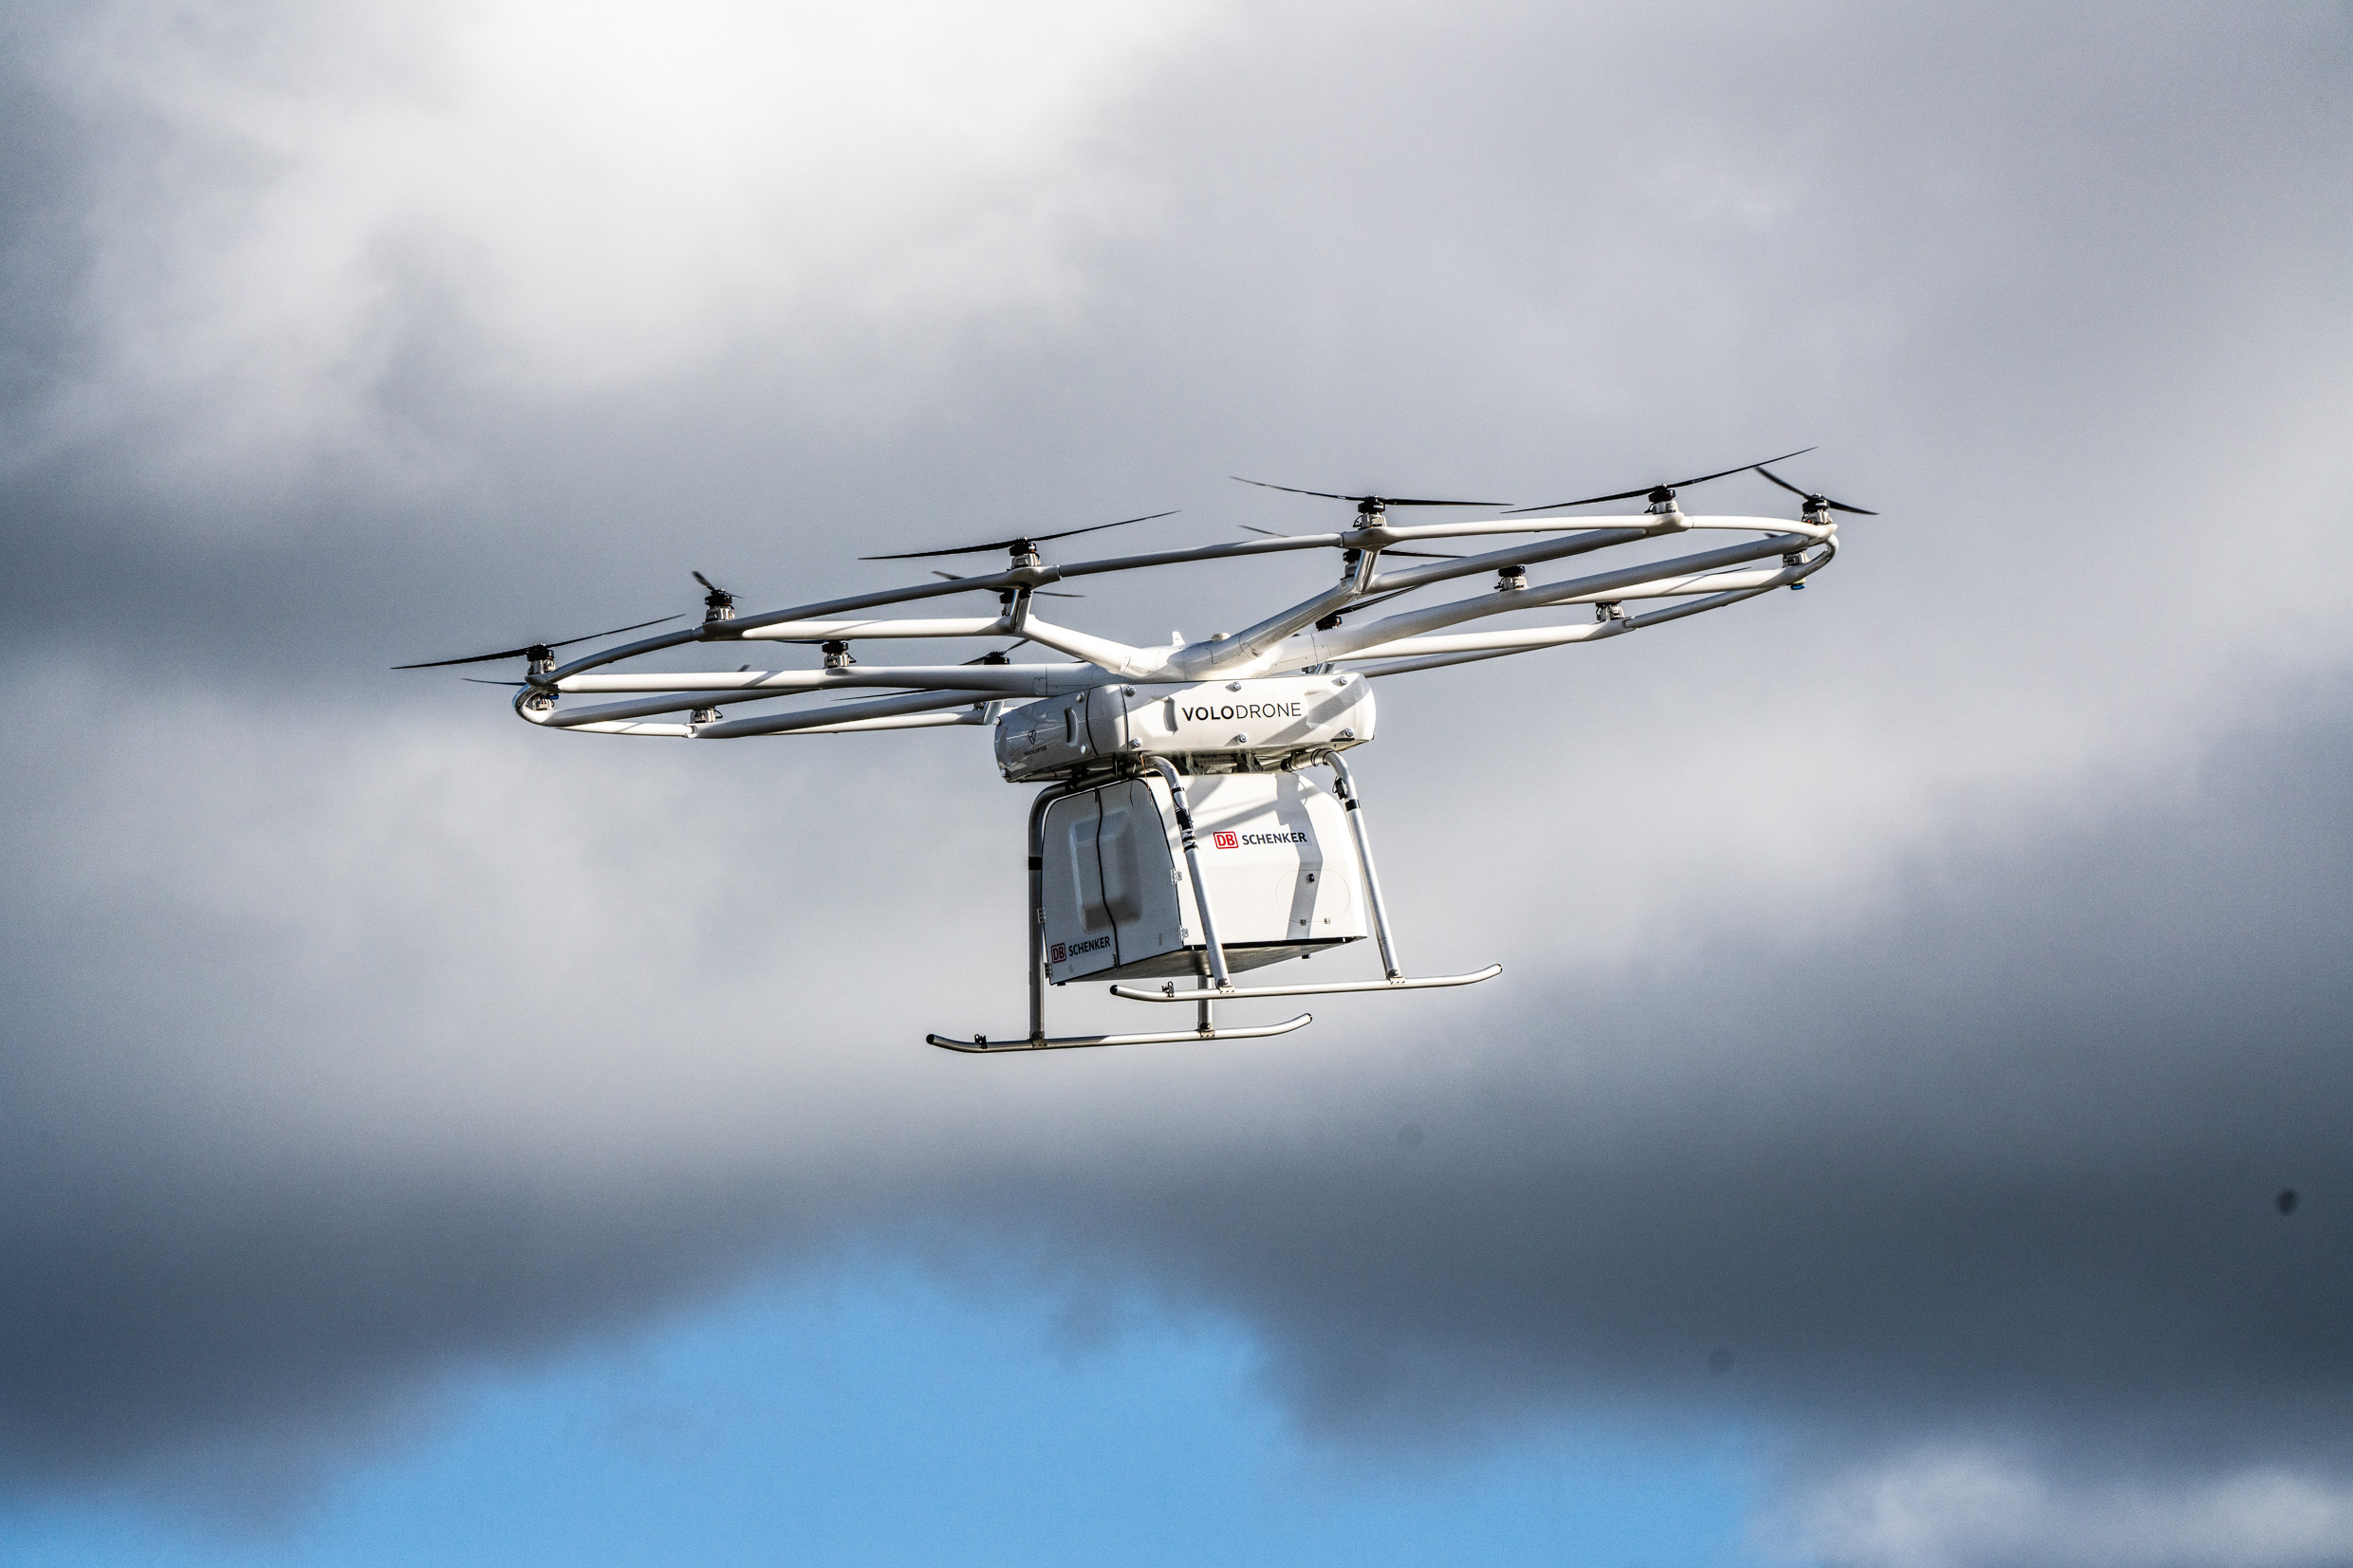 The VoloDrone in action